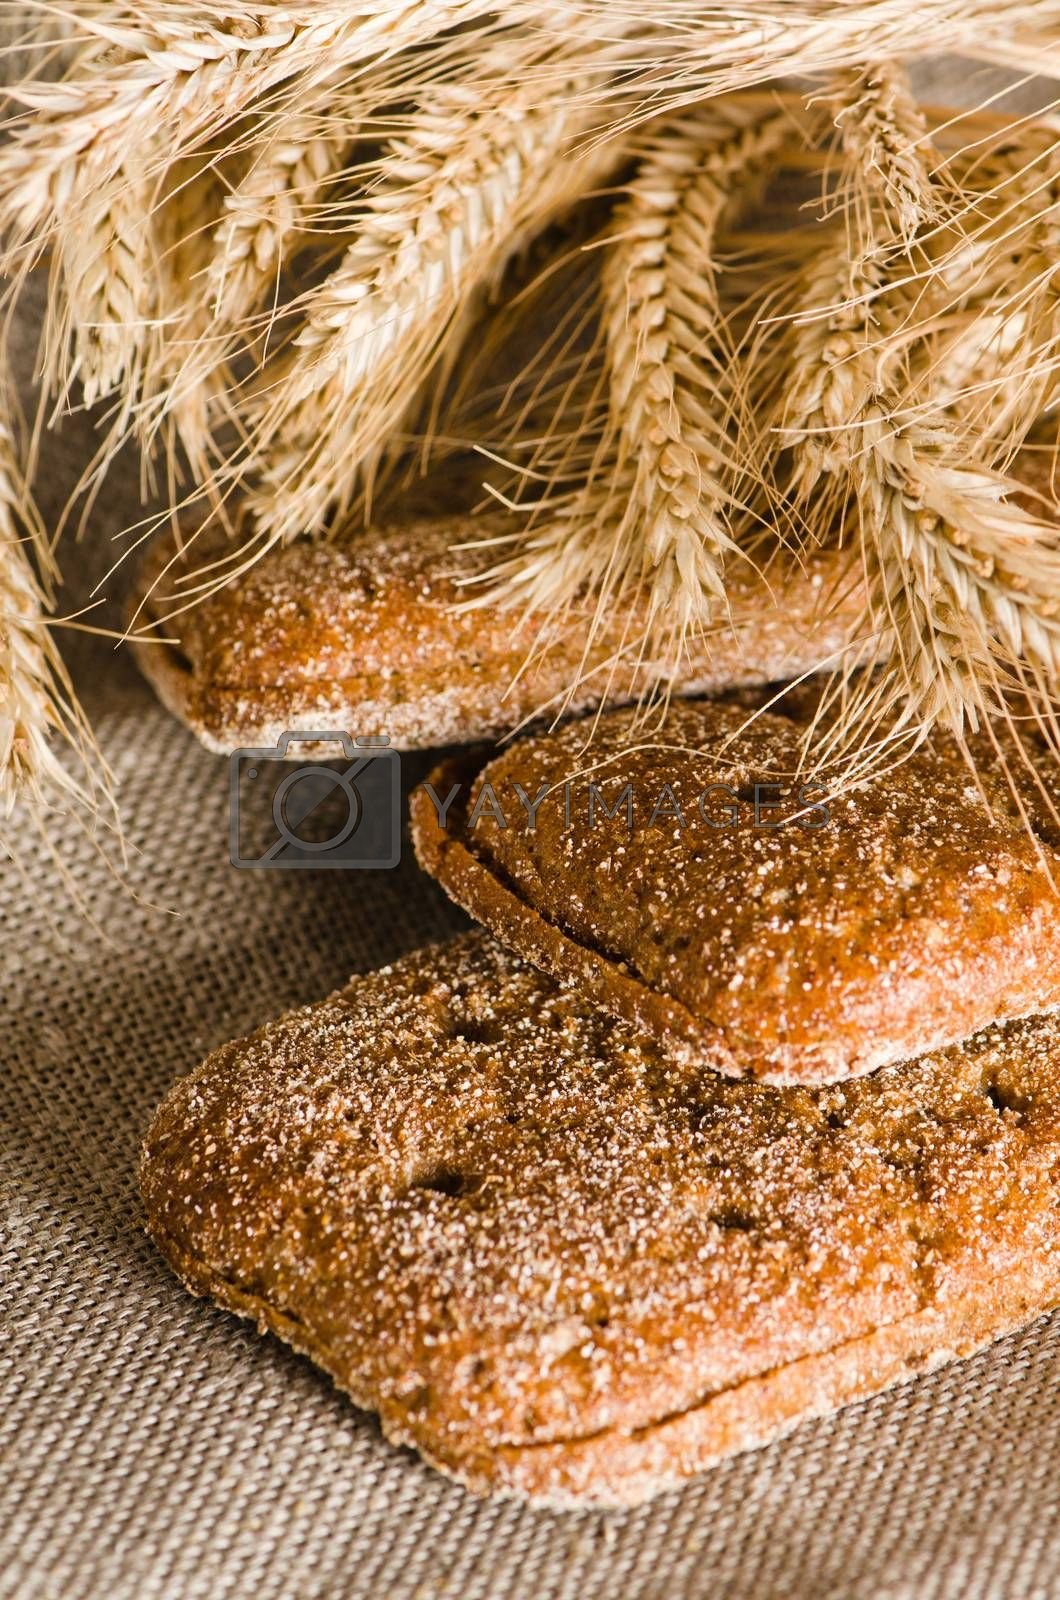 Rye bread and wheat on cloth sack, close-up by breeze09